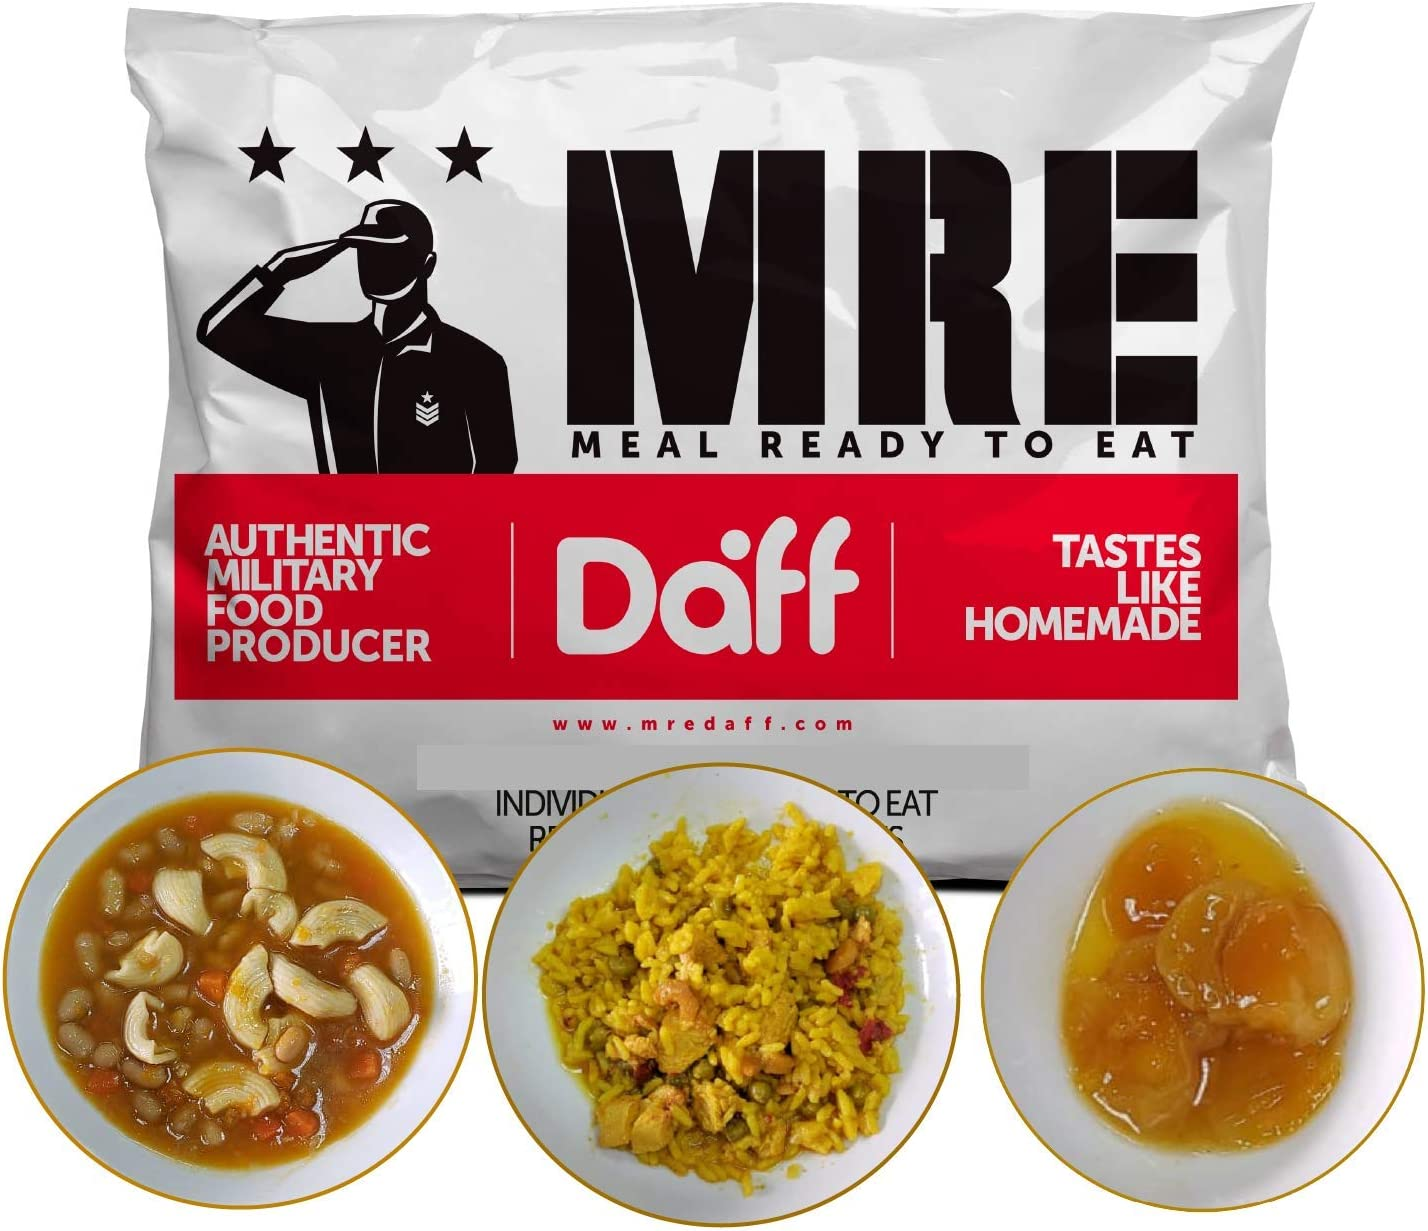 MRE Meals Military Style by DAFF. Full Day Pack 1 (1 Apricot Breakfast, 1 Pasta Meal, 1 Paella Meal) (3 Single Meals). Full MRE for Camping, Survival and as Emergency Food. [1000 Calories/Bag]